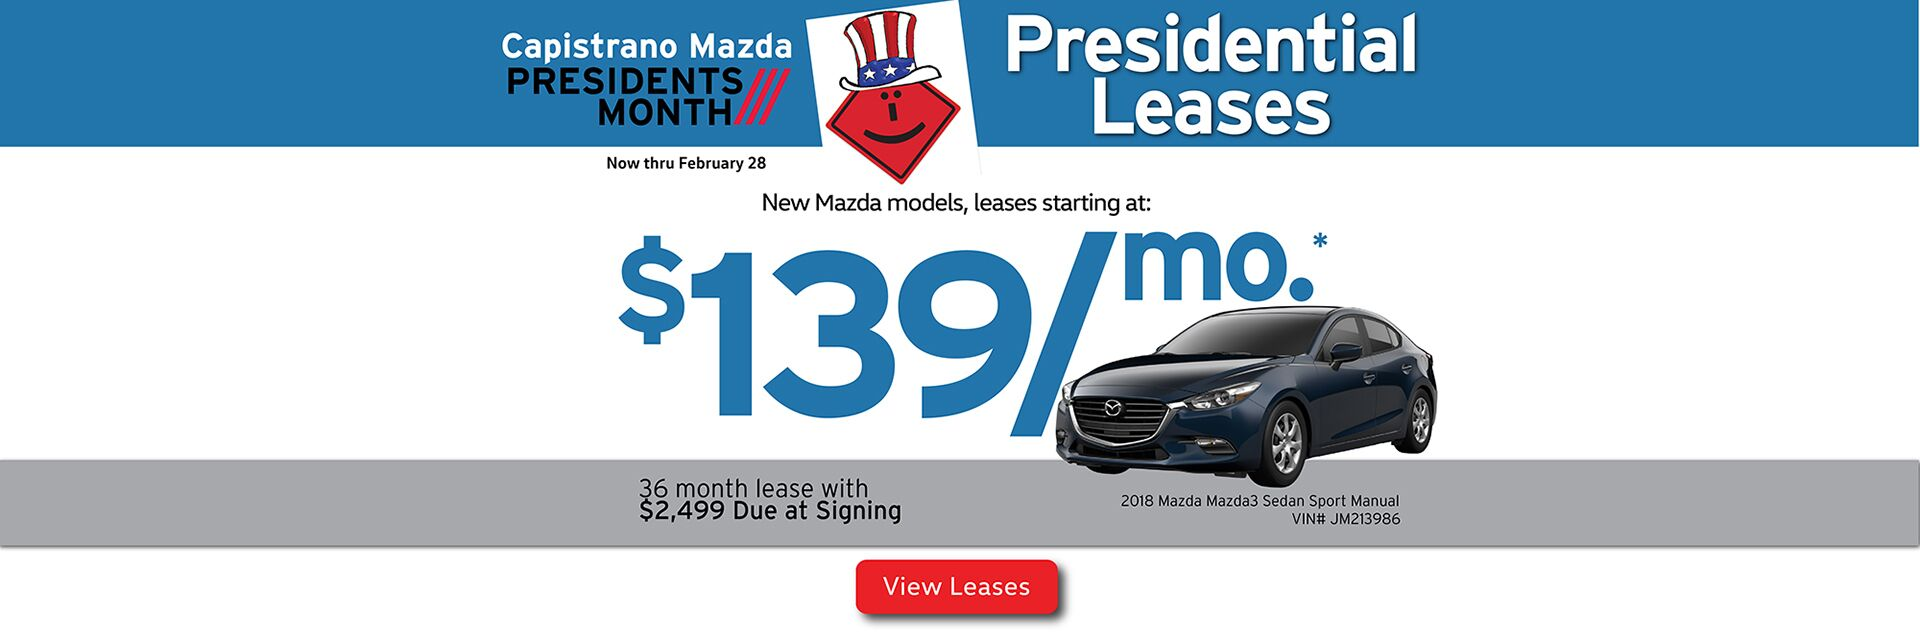 Capistrano Mazda Presidential Lease Offers - Out with the old and in with the new!